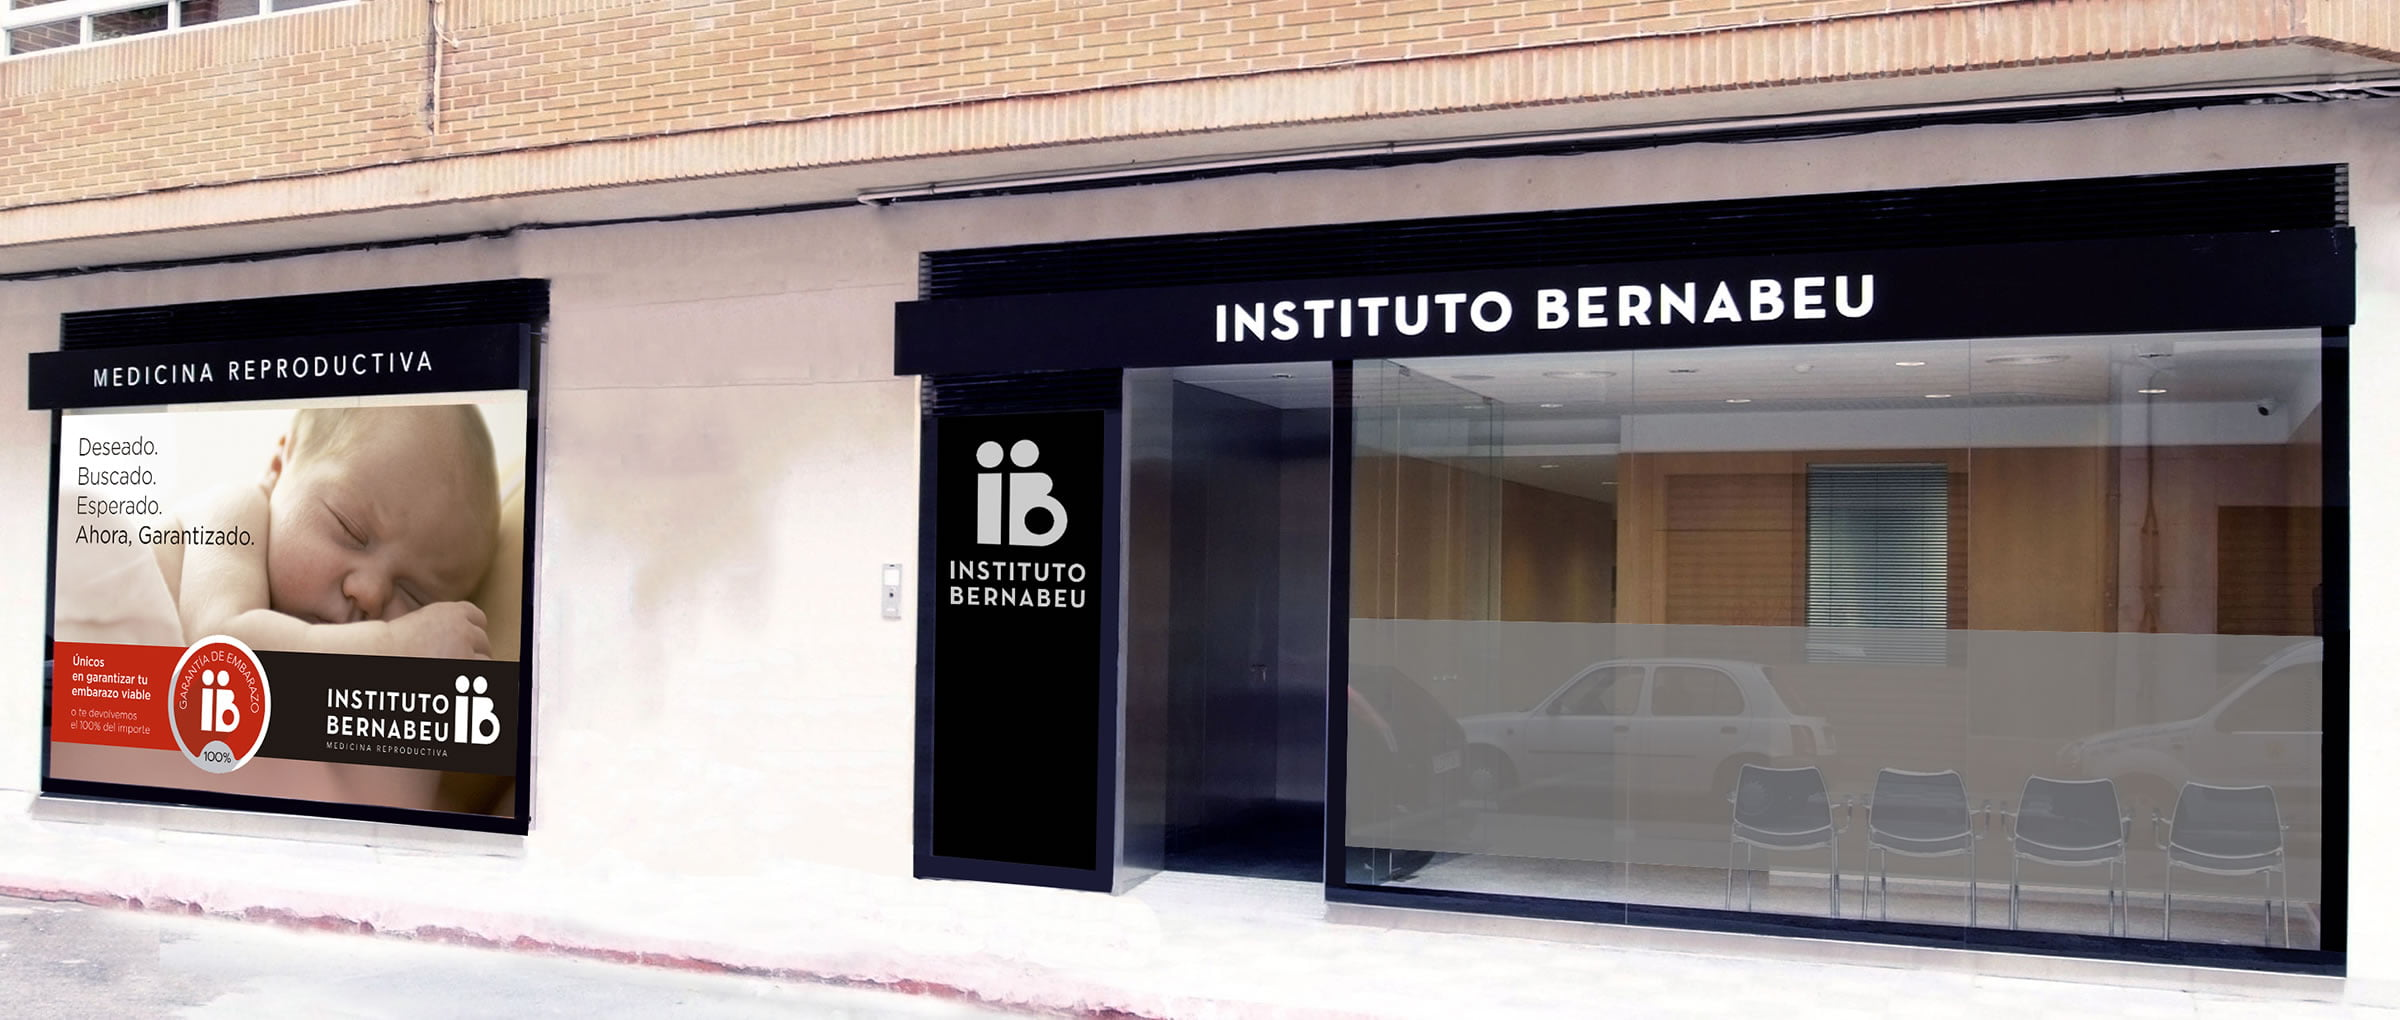 Instituto Bernabeu Albacete